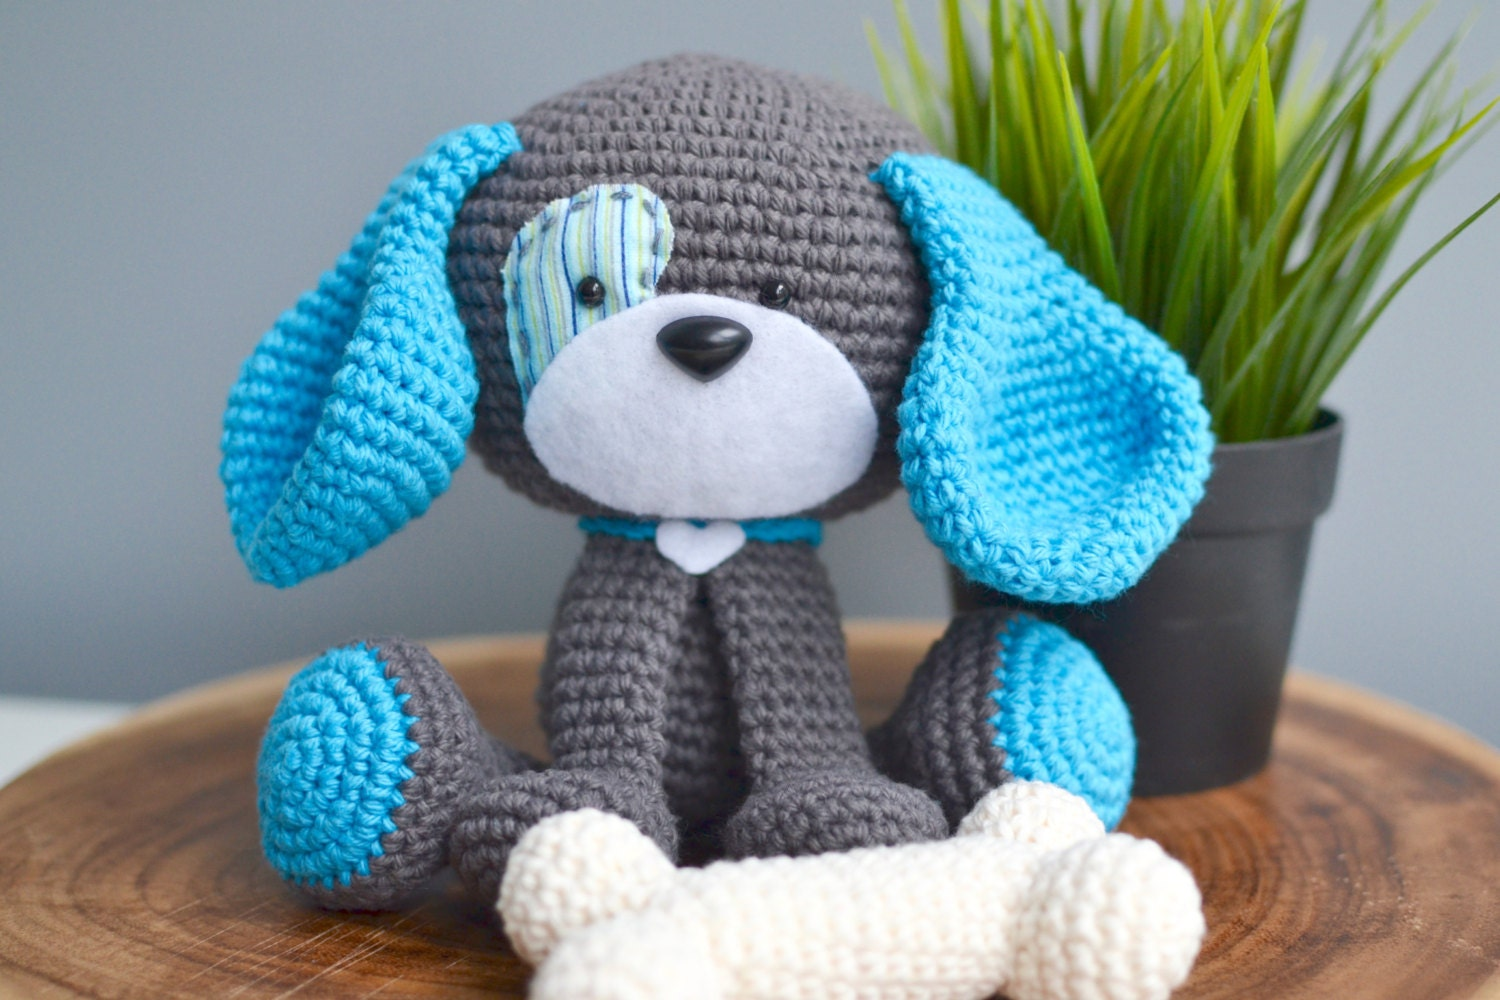 Crochet Patterns Dog : Cute Dog Crochet Pattern. Domino The Dog Amigurumi Crochet